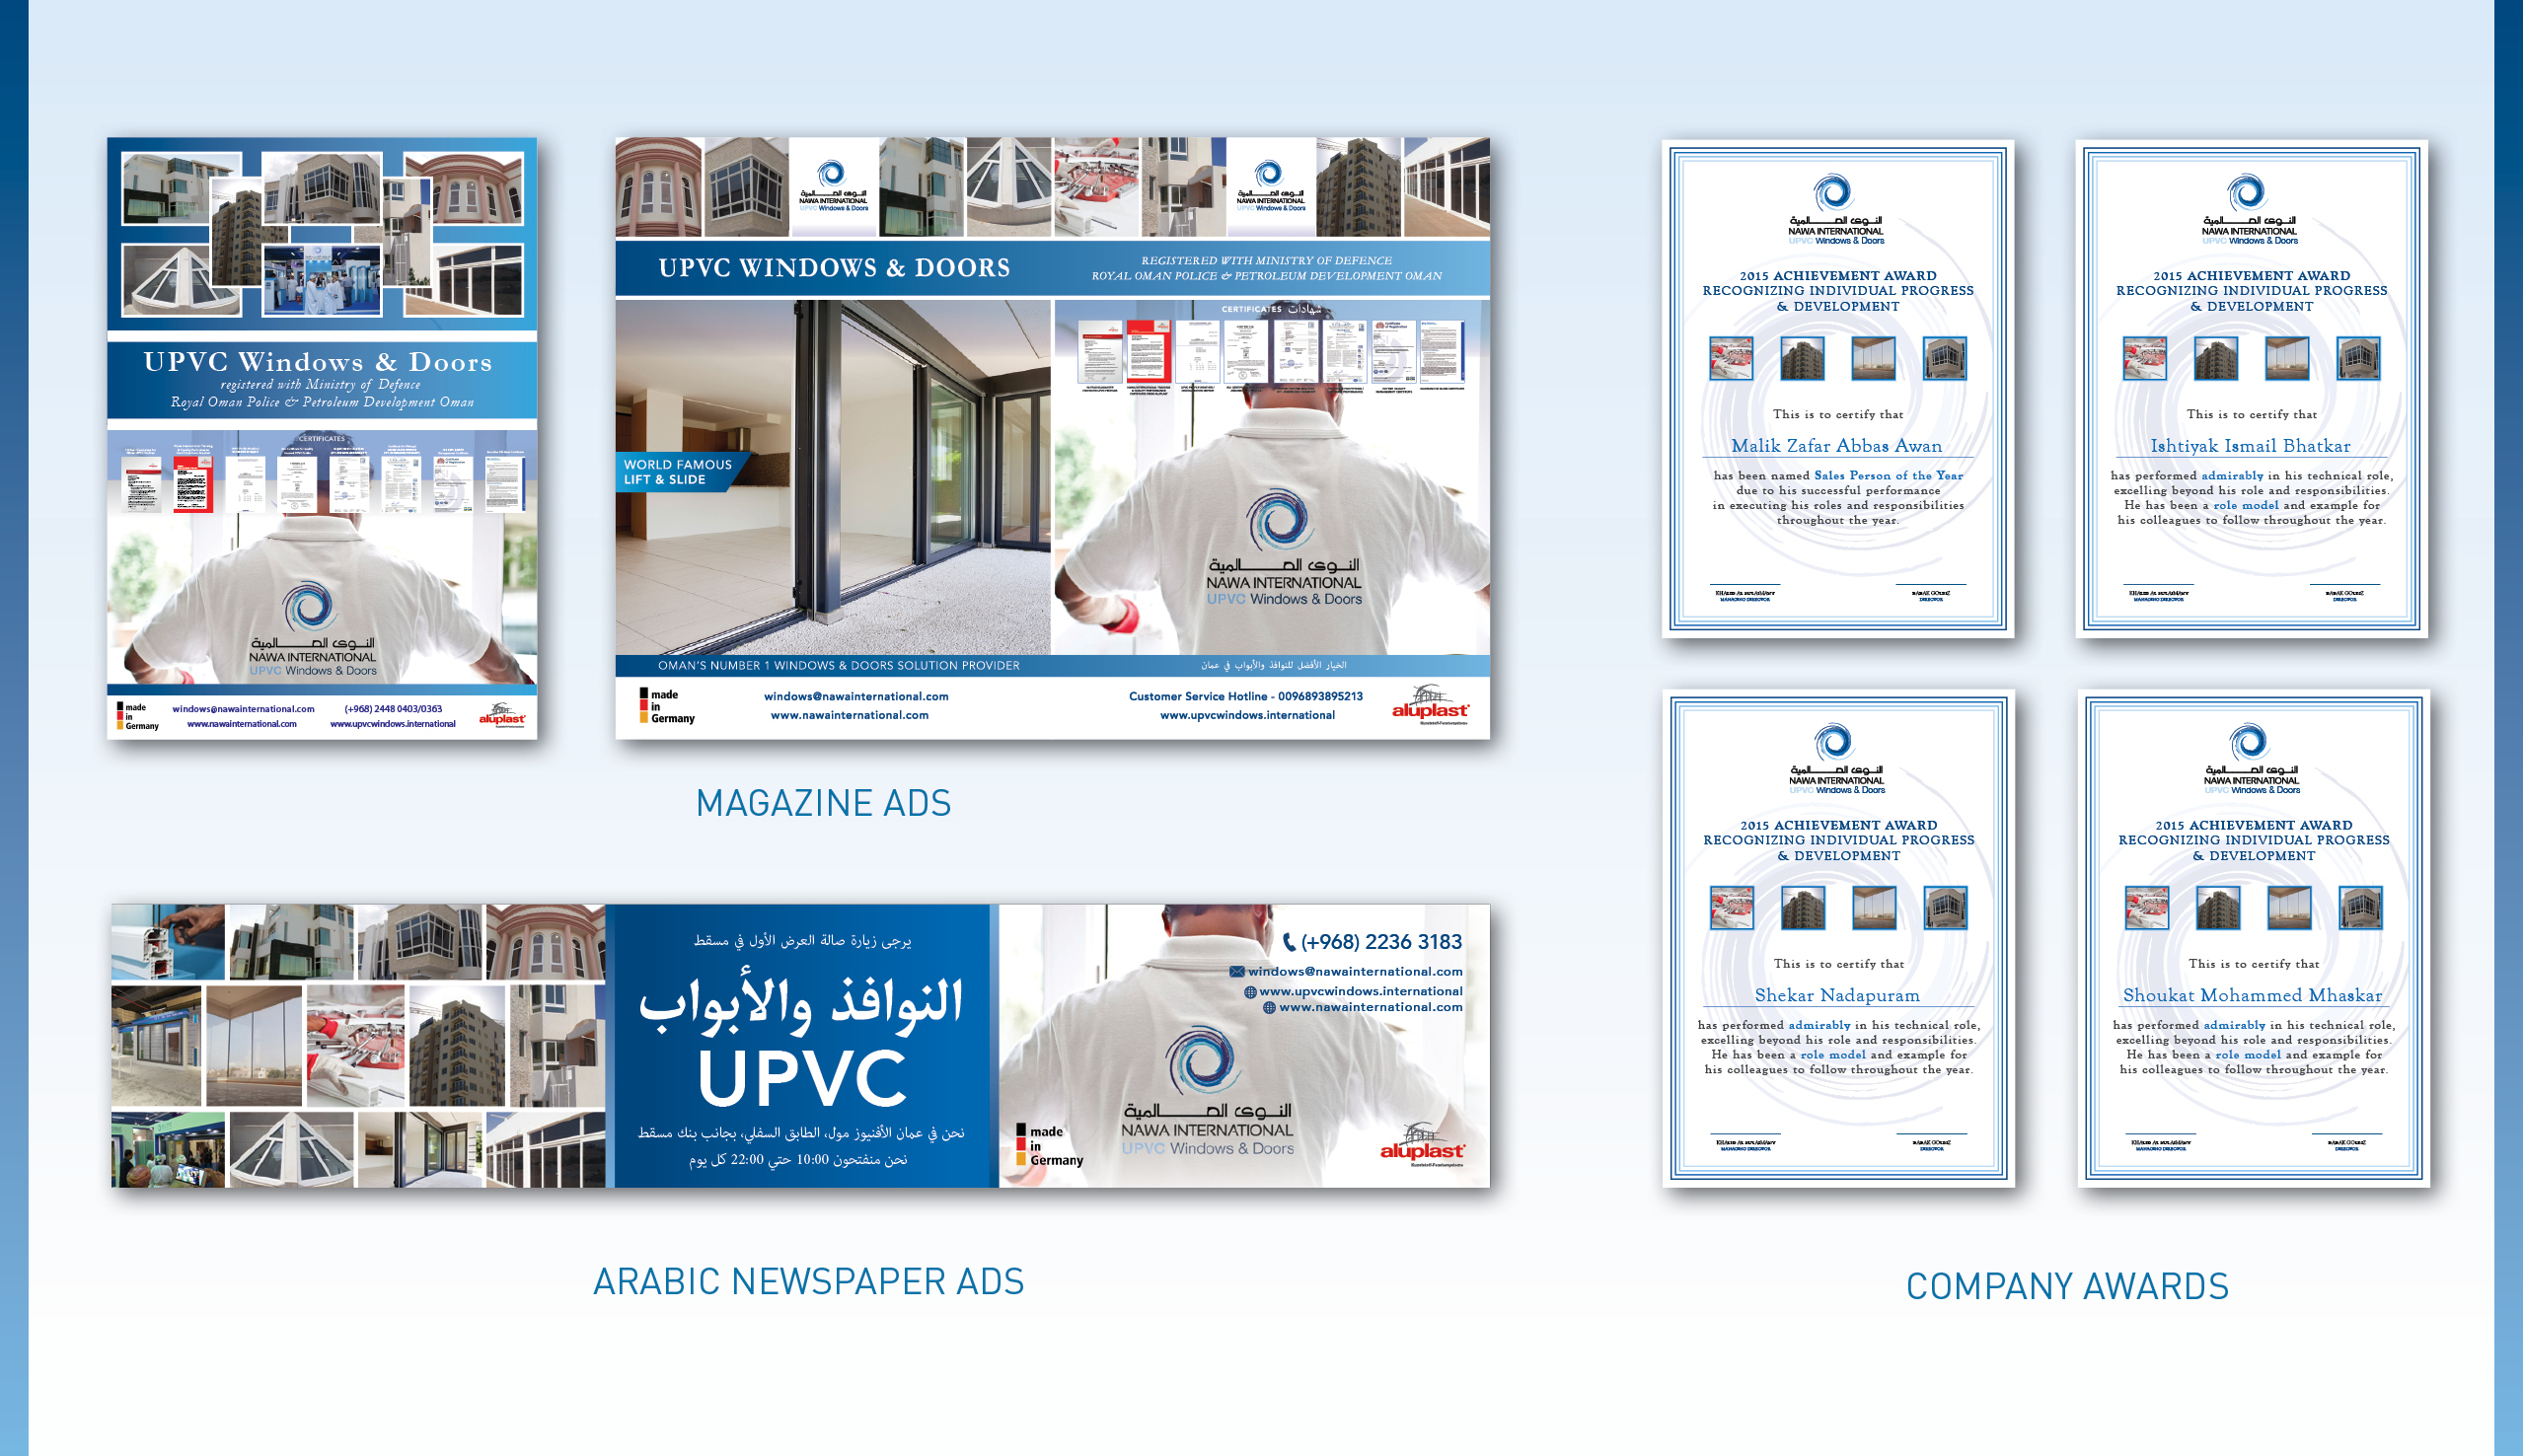 NAWA UPVC Windows & Doors